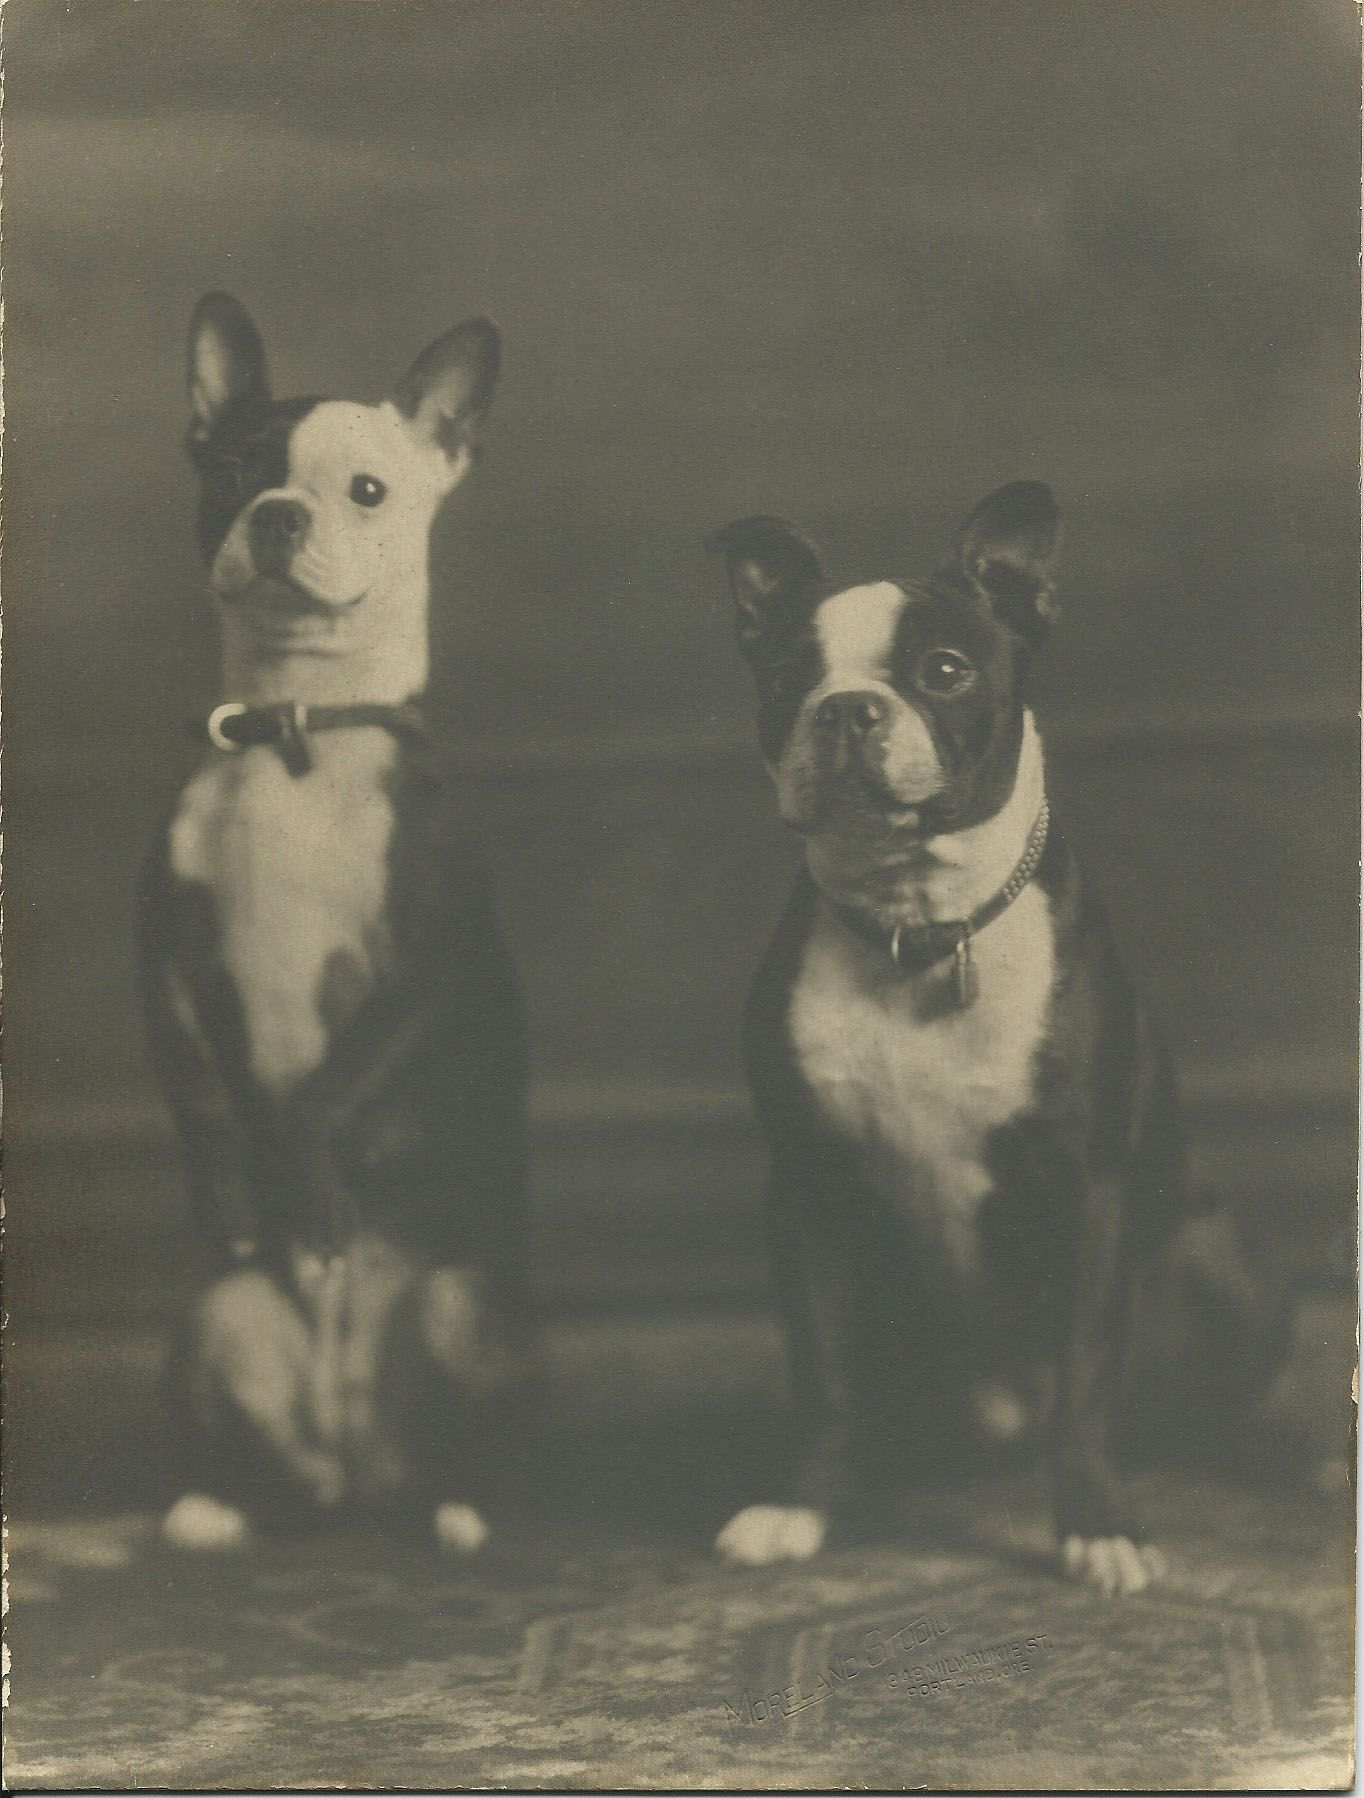 From Bendale Collection Boston Terrier Dog Boston Terrier Love Boston Terrier